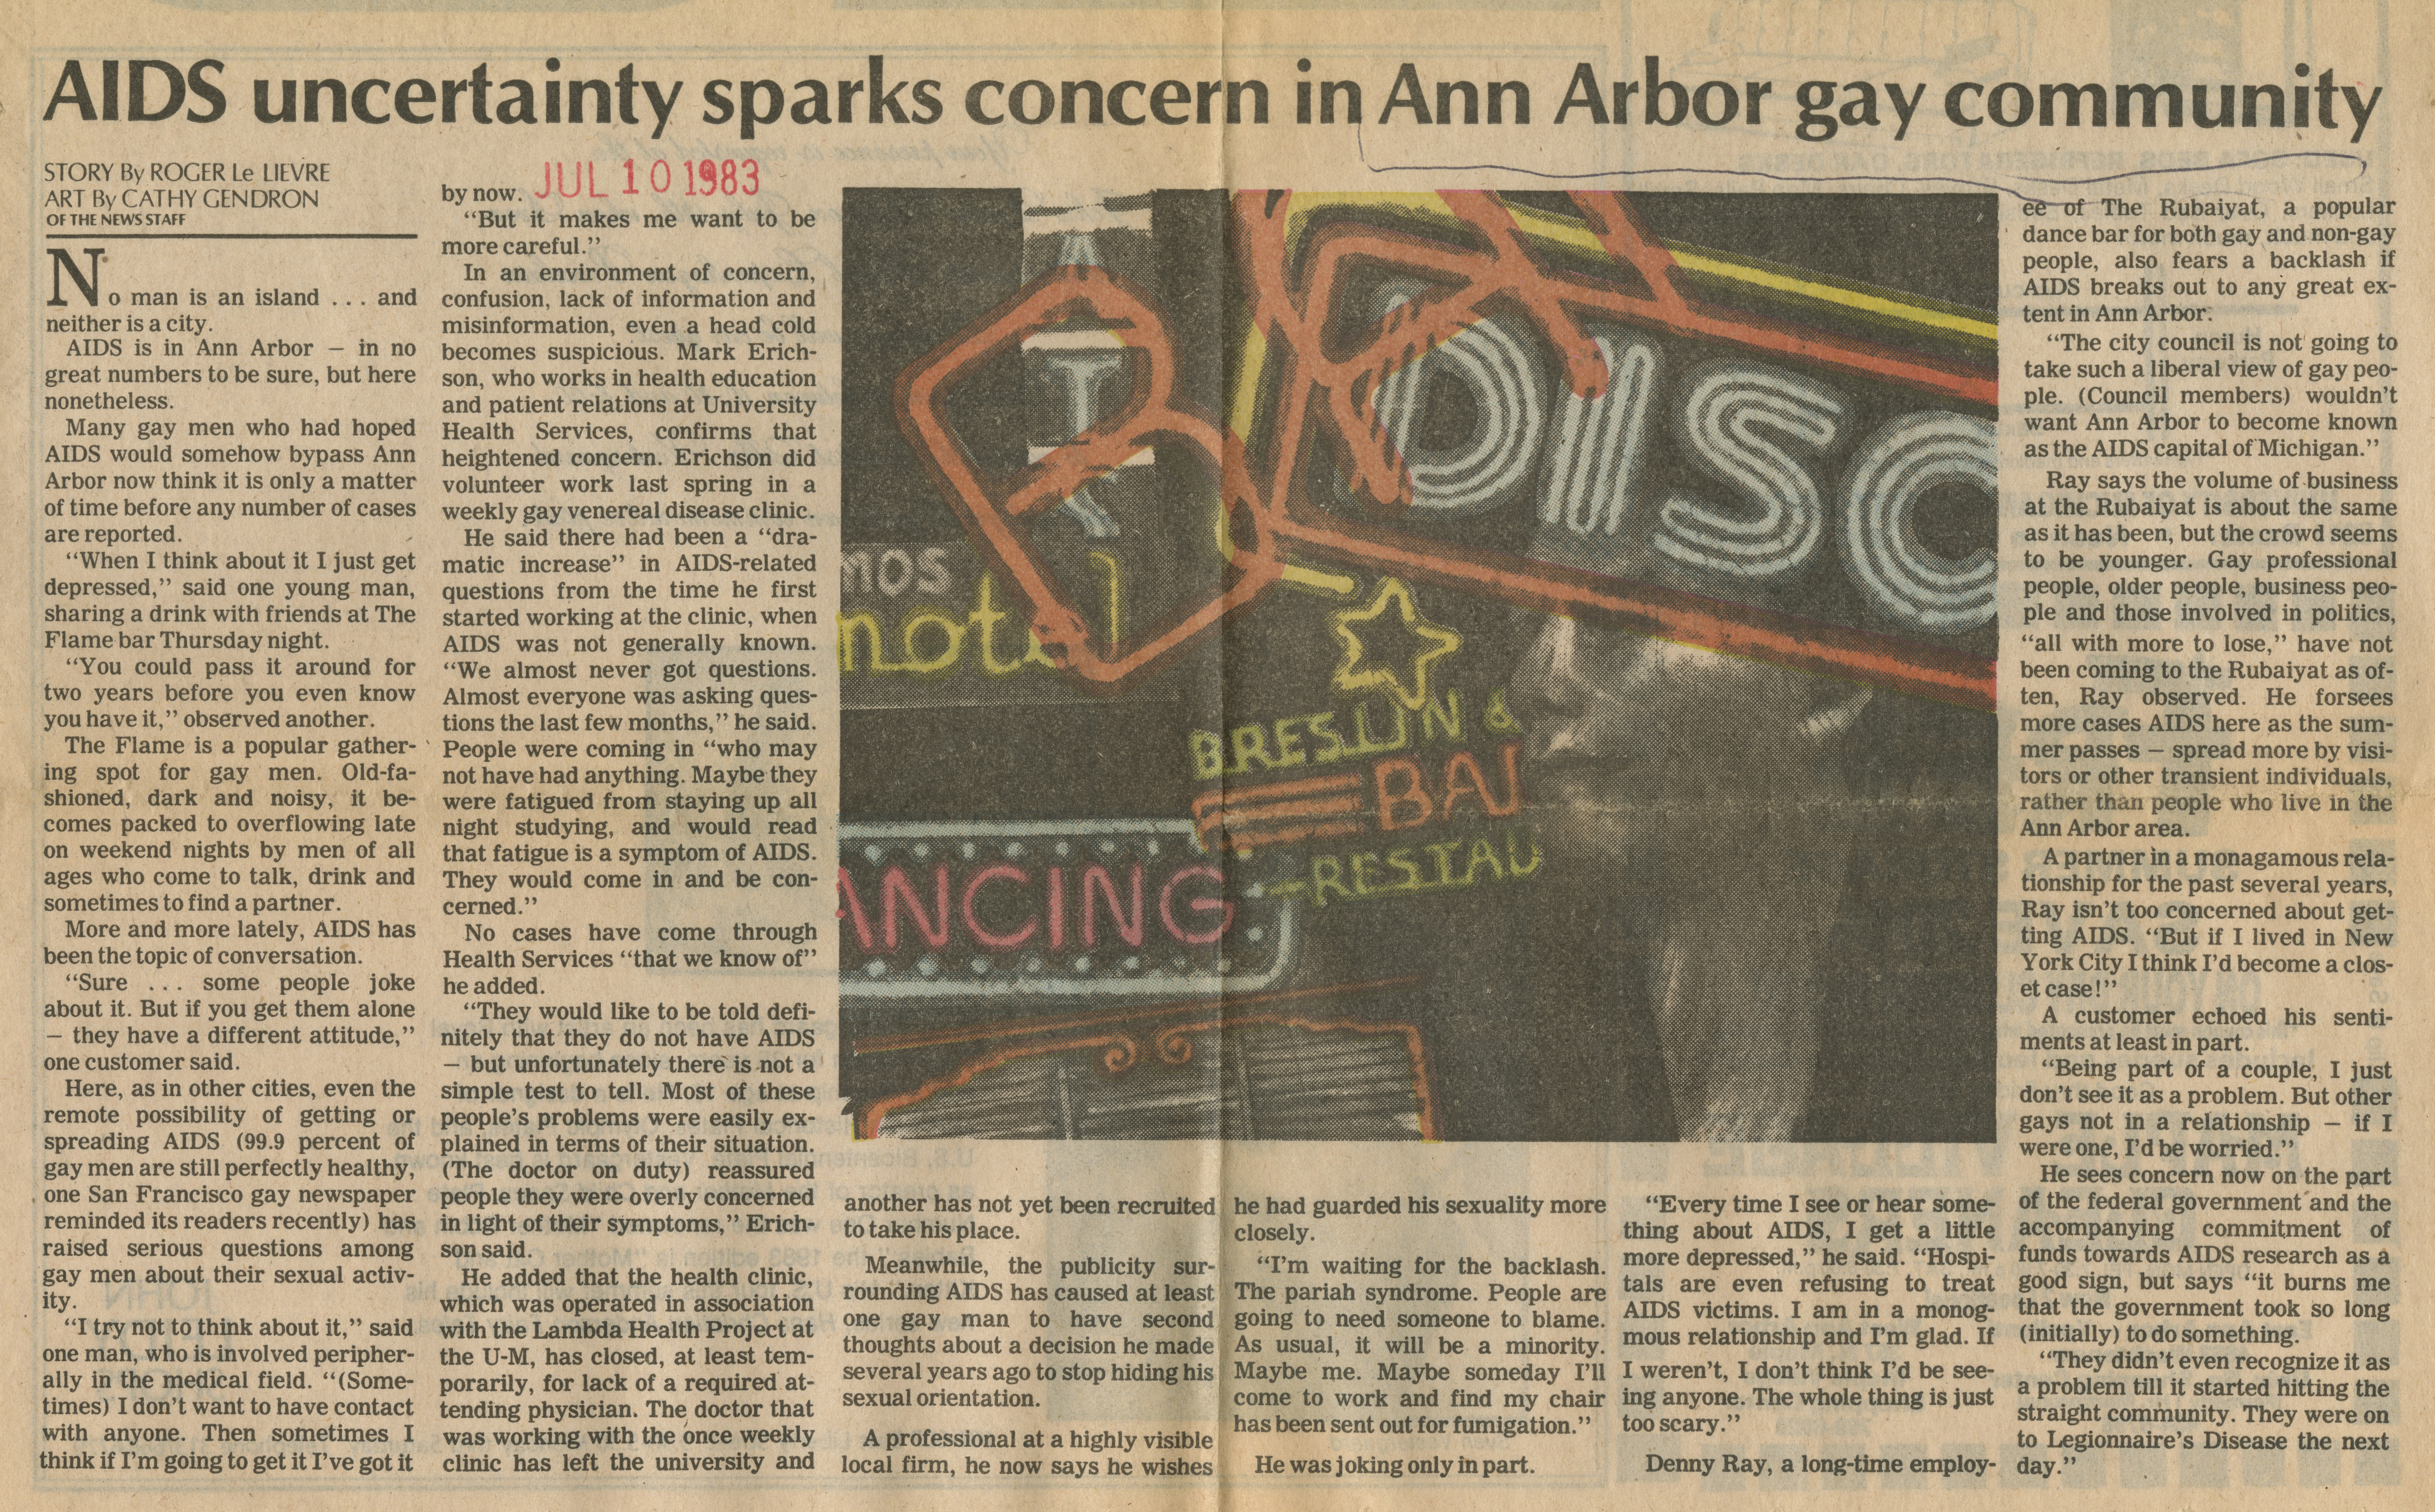 AIDS Uncertainty Sparks Concern In Ann Arbor Gay Community image